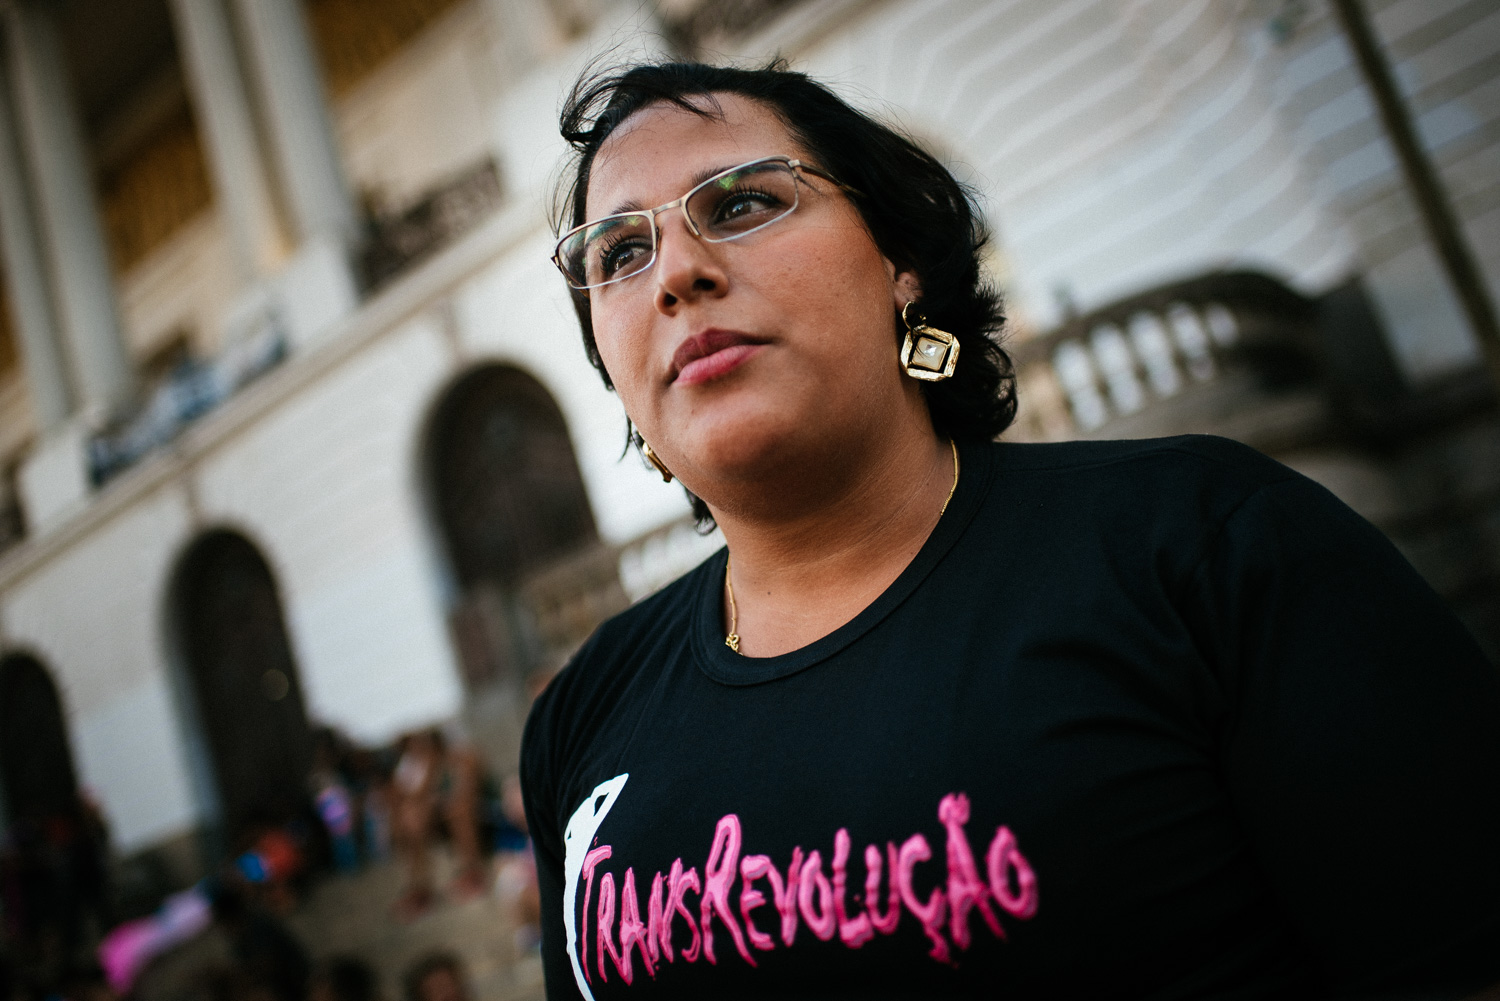 Beatriz Cordeiro, 28, speaks about transgender issues on transsexual awareness day, January 29th , 2015, in front of Rio de Janeiro city hall.